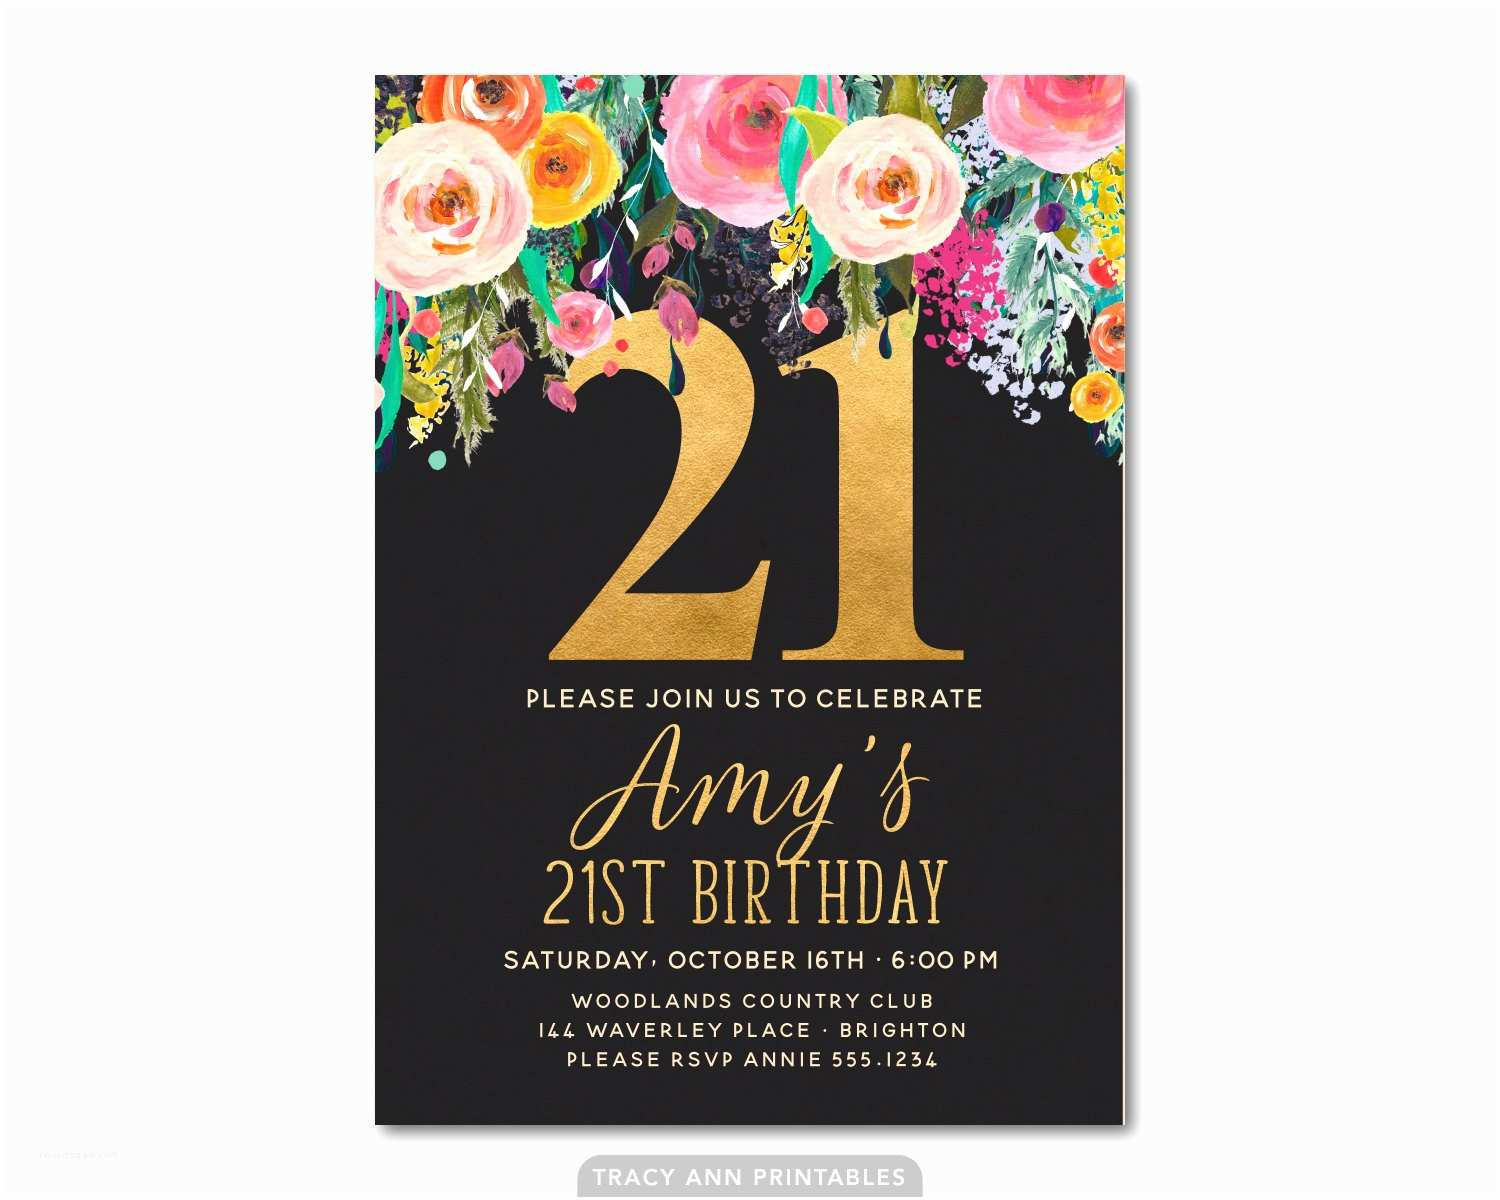 21st Birthday Invitations 21st Birthday Invitation Floral 21st Birthday Invite 21st